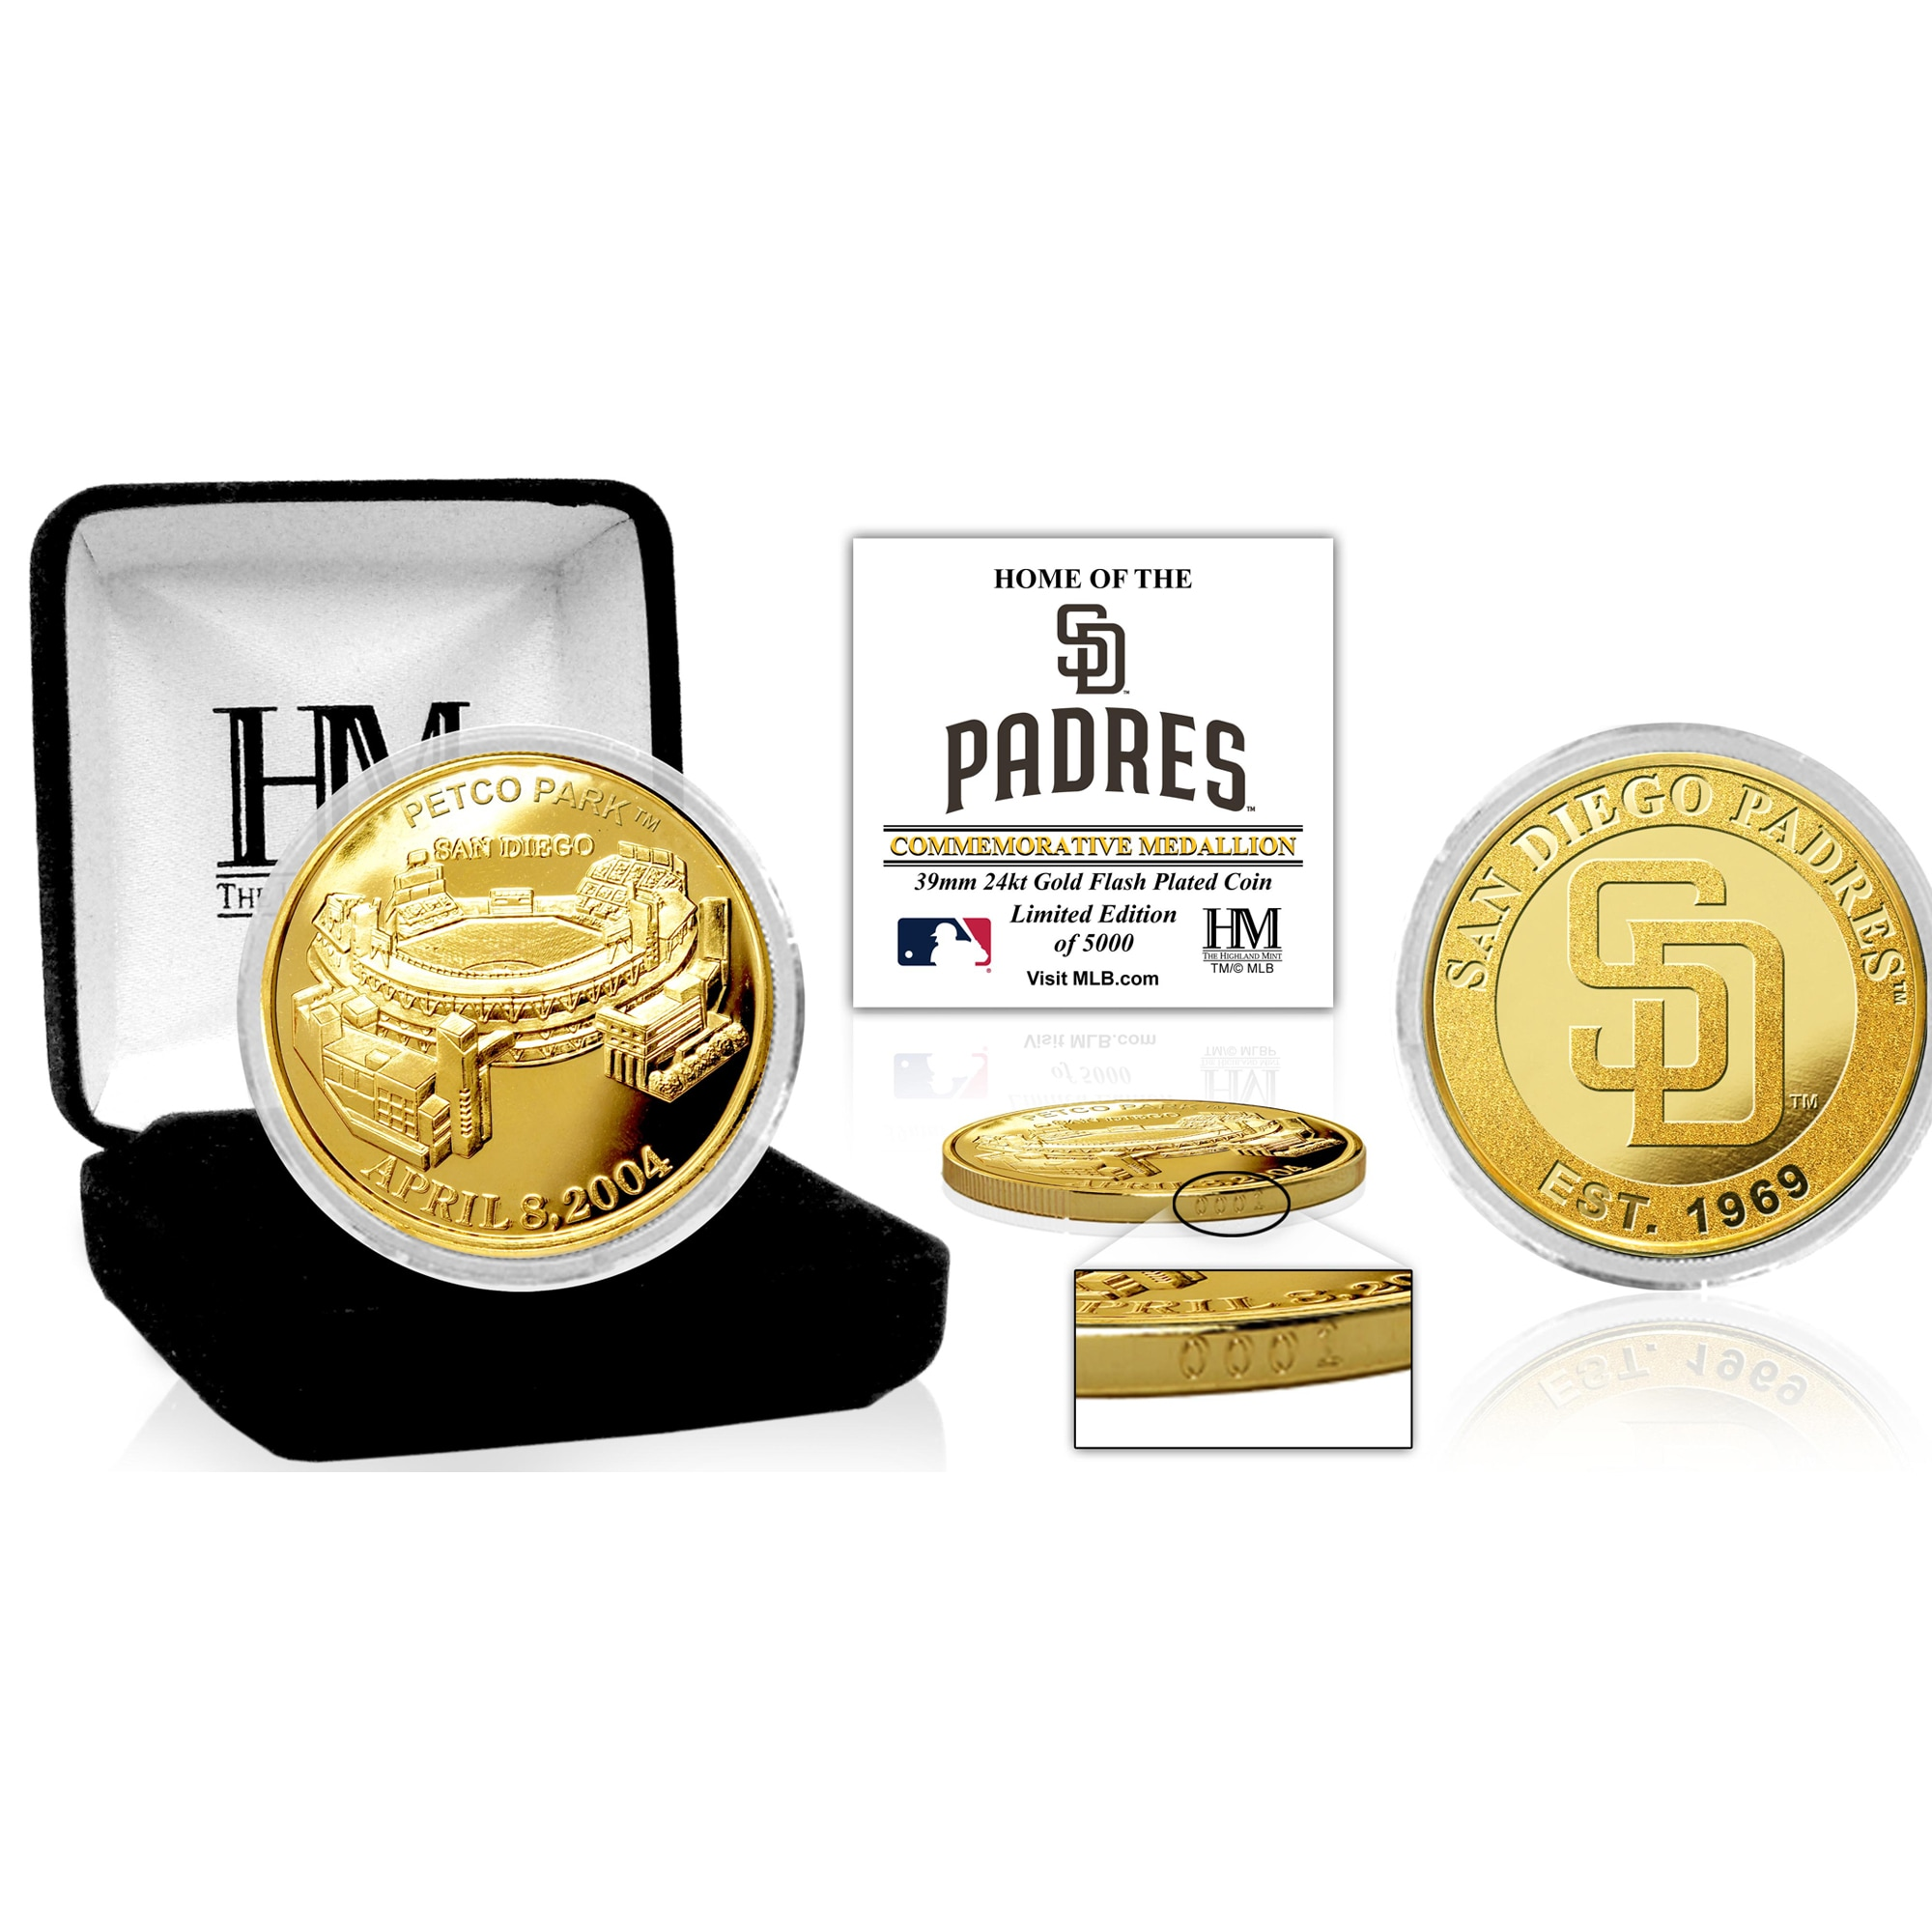 San Diego Padres Highland Mint Stadium Gold Mint Coin